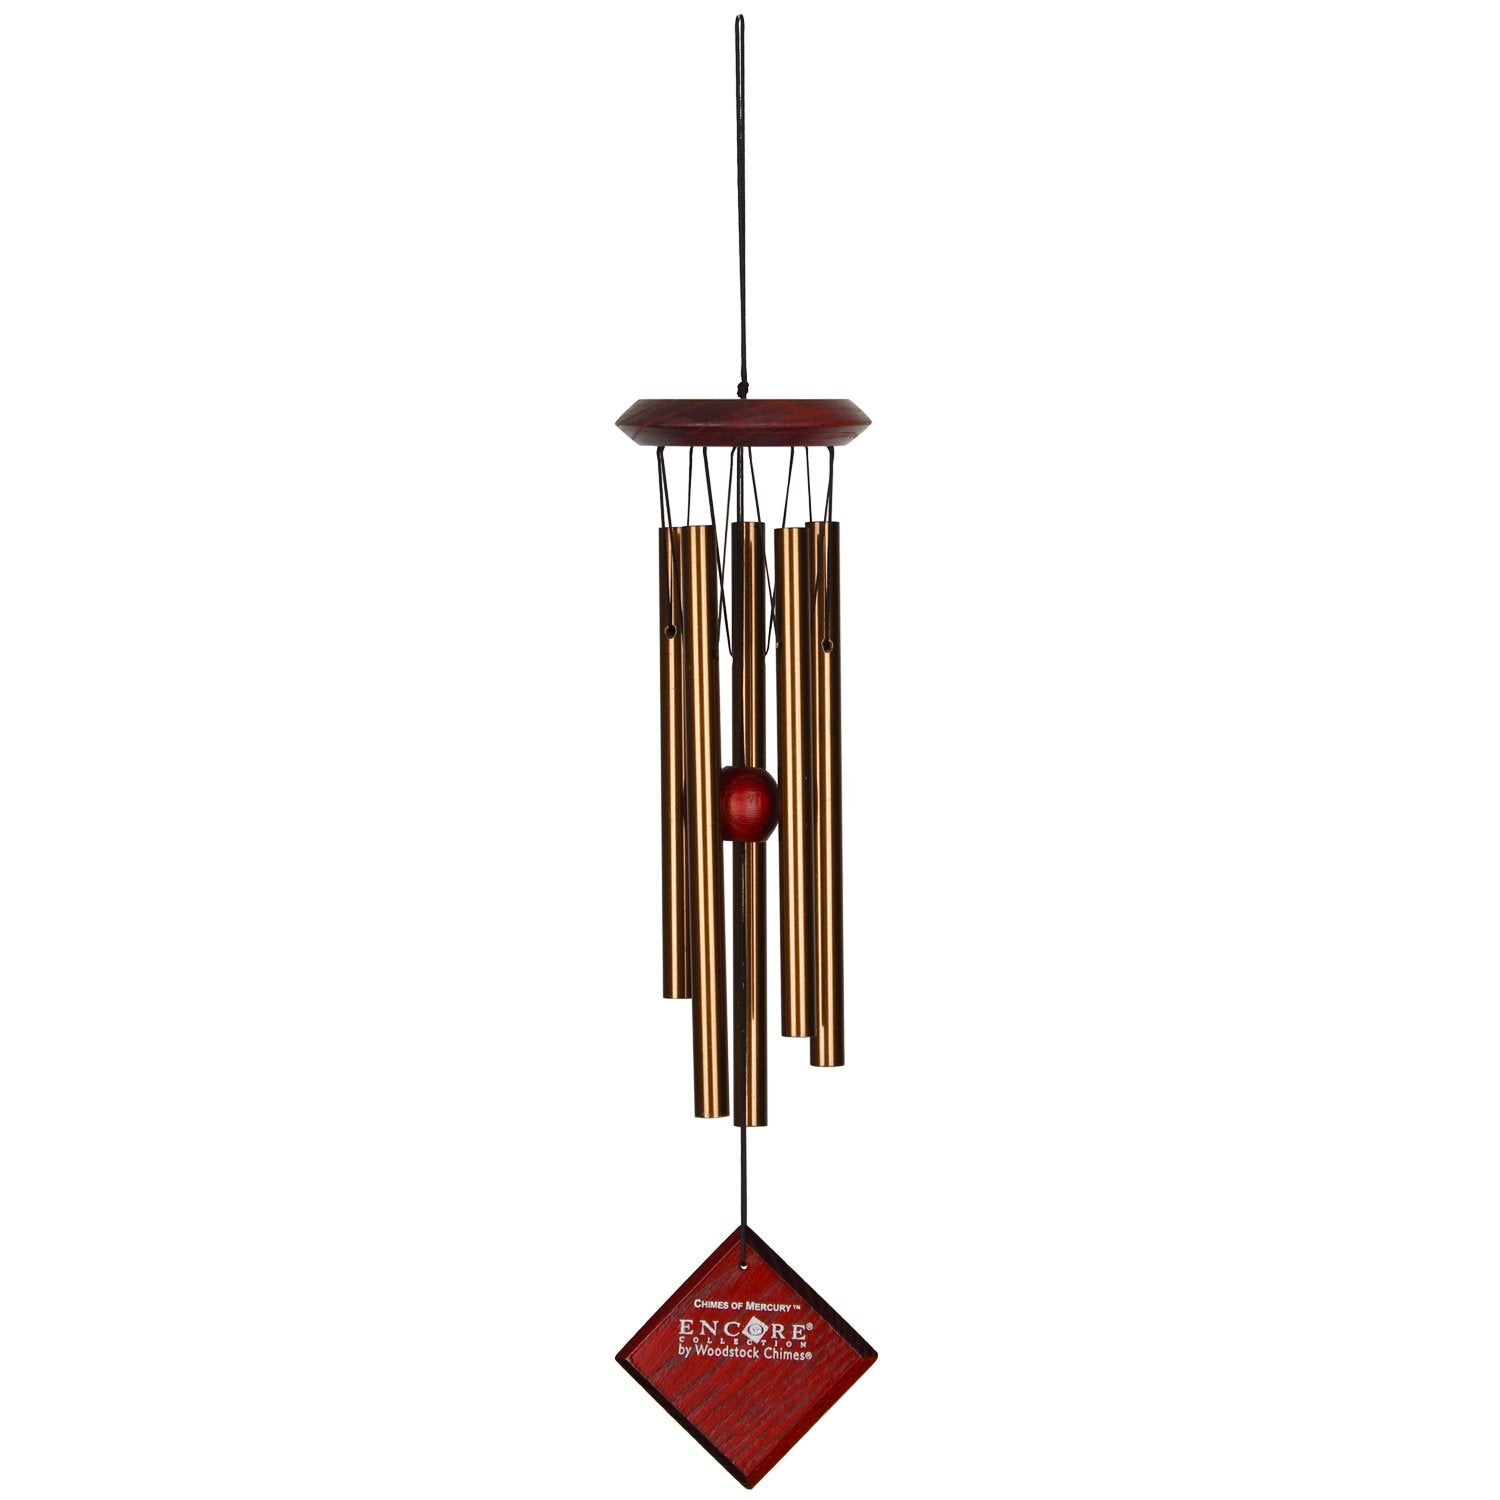 Encore Chimes of Mercury - Bronze full product image